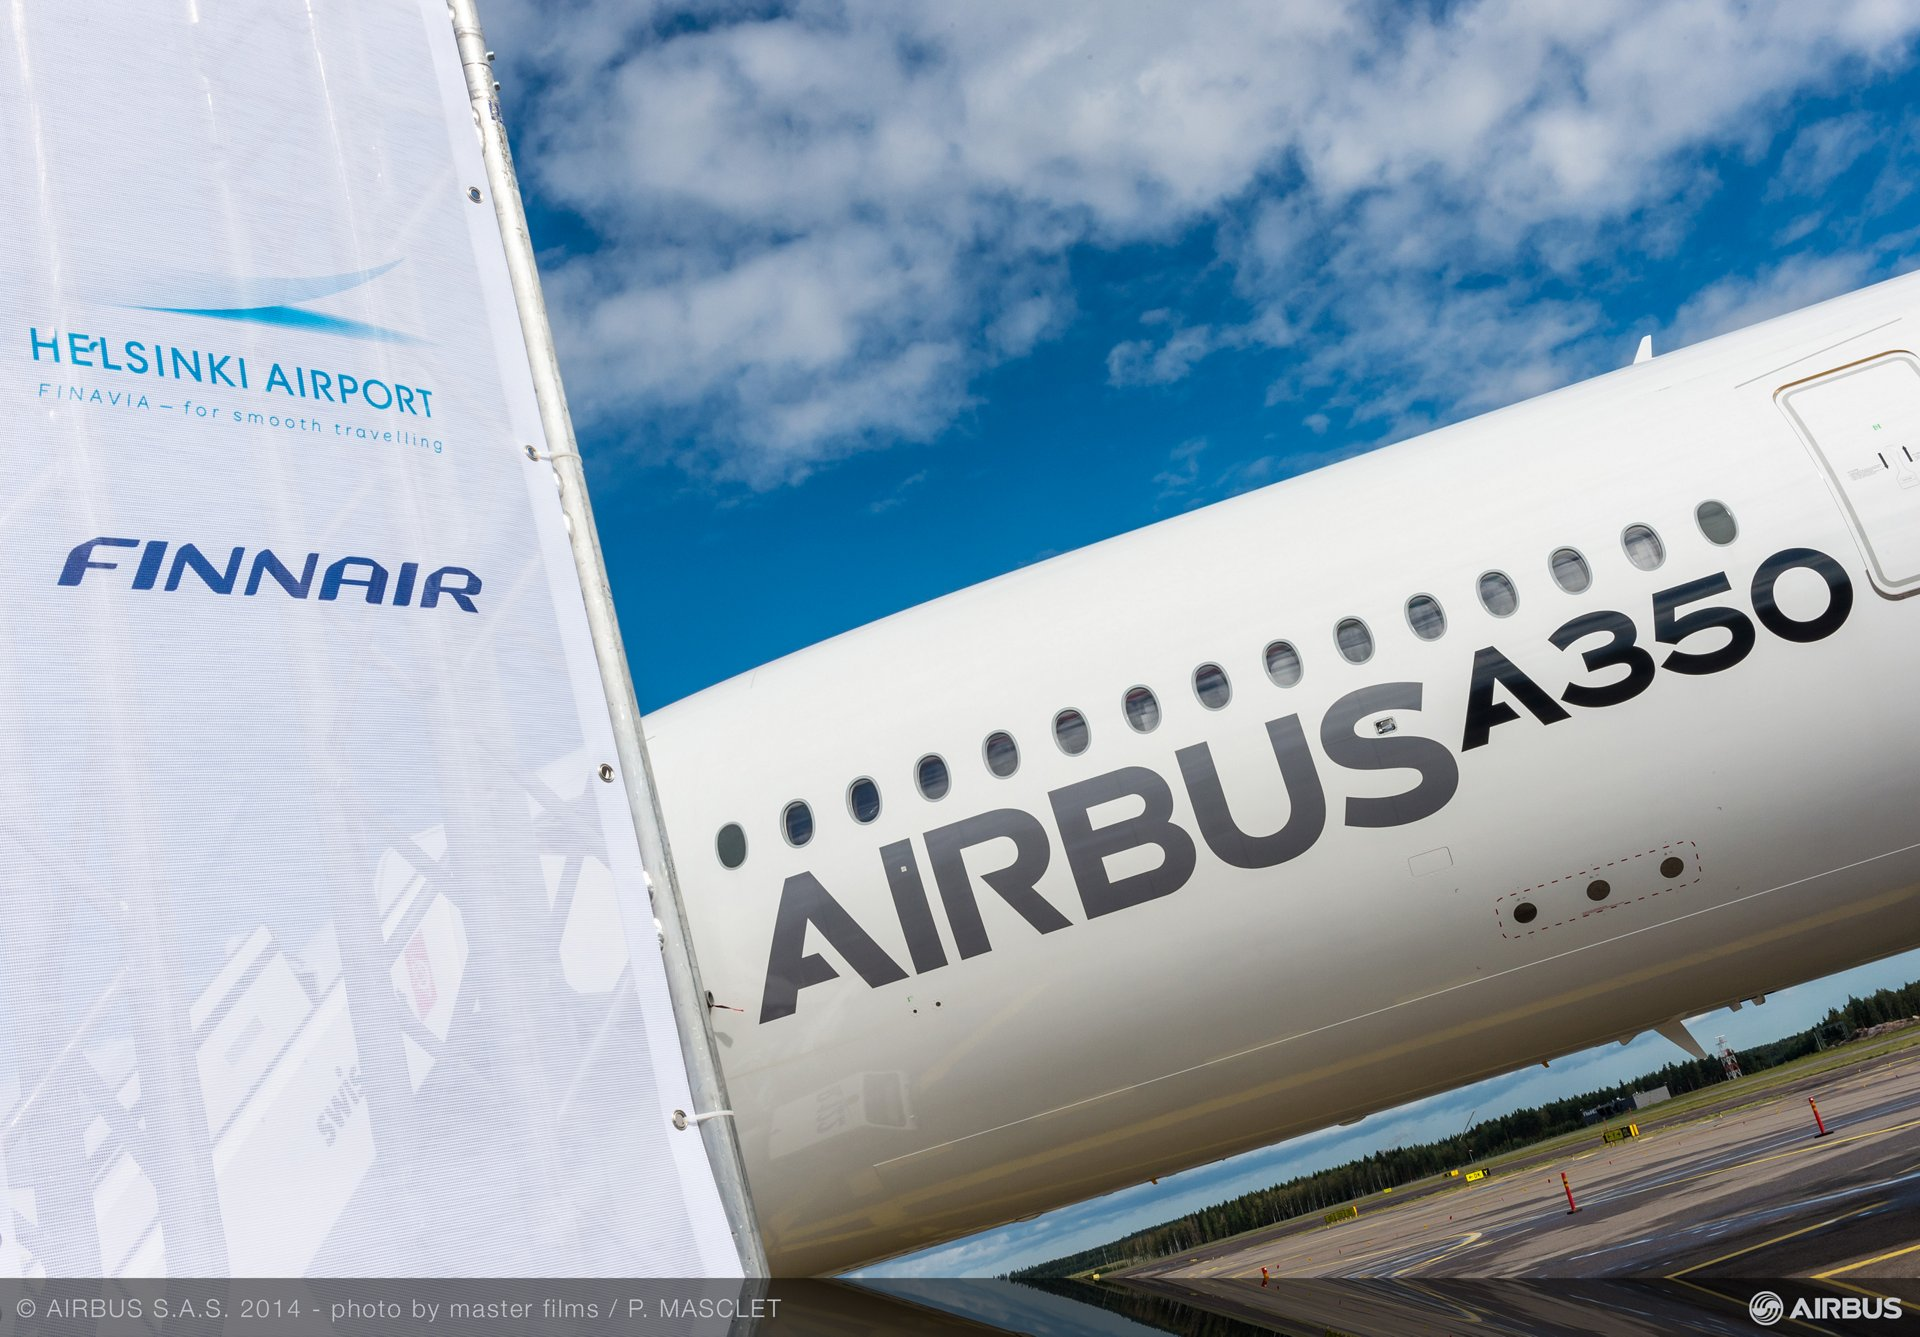 A350 XWB ON THE  GROUND - HELSINKI AIRPORT - TRIP 4, A350 XWB route proving Helsinki airport 3